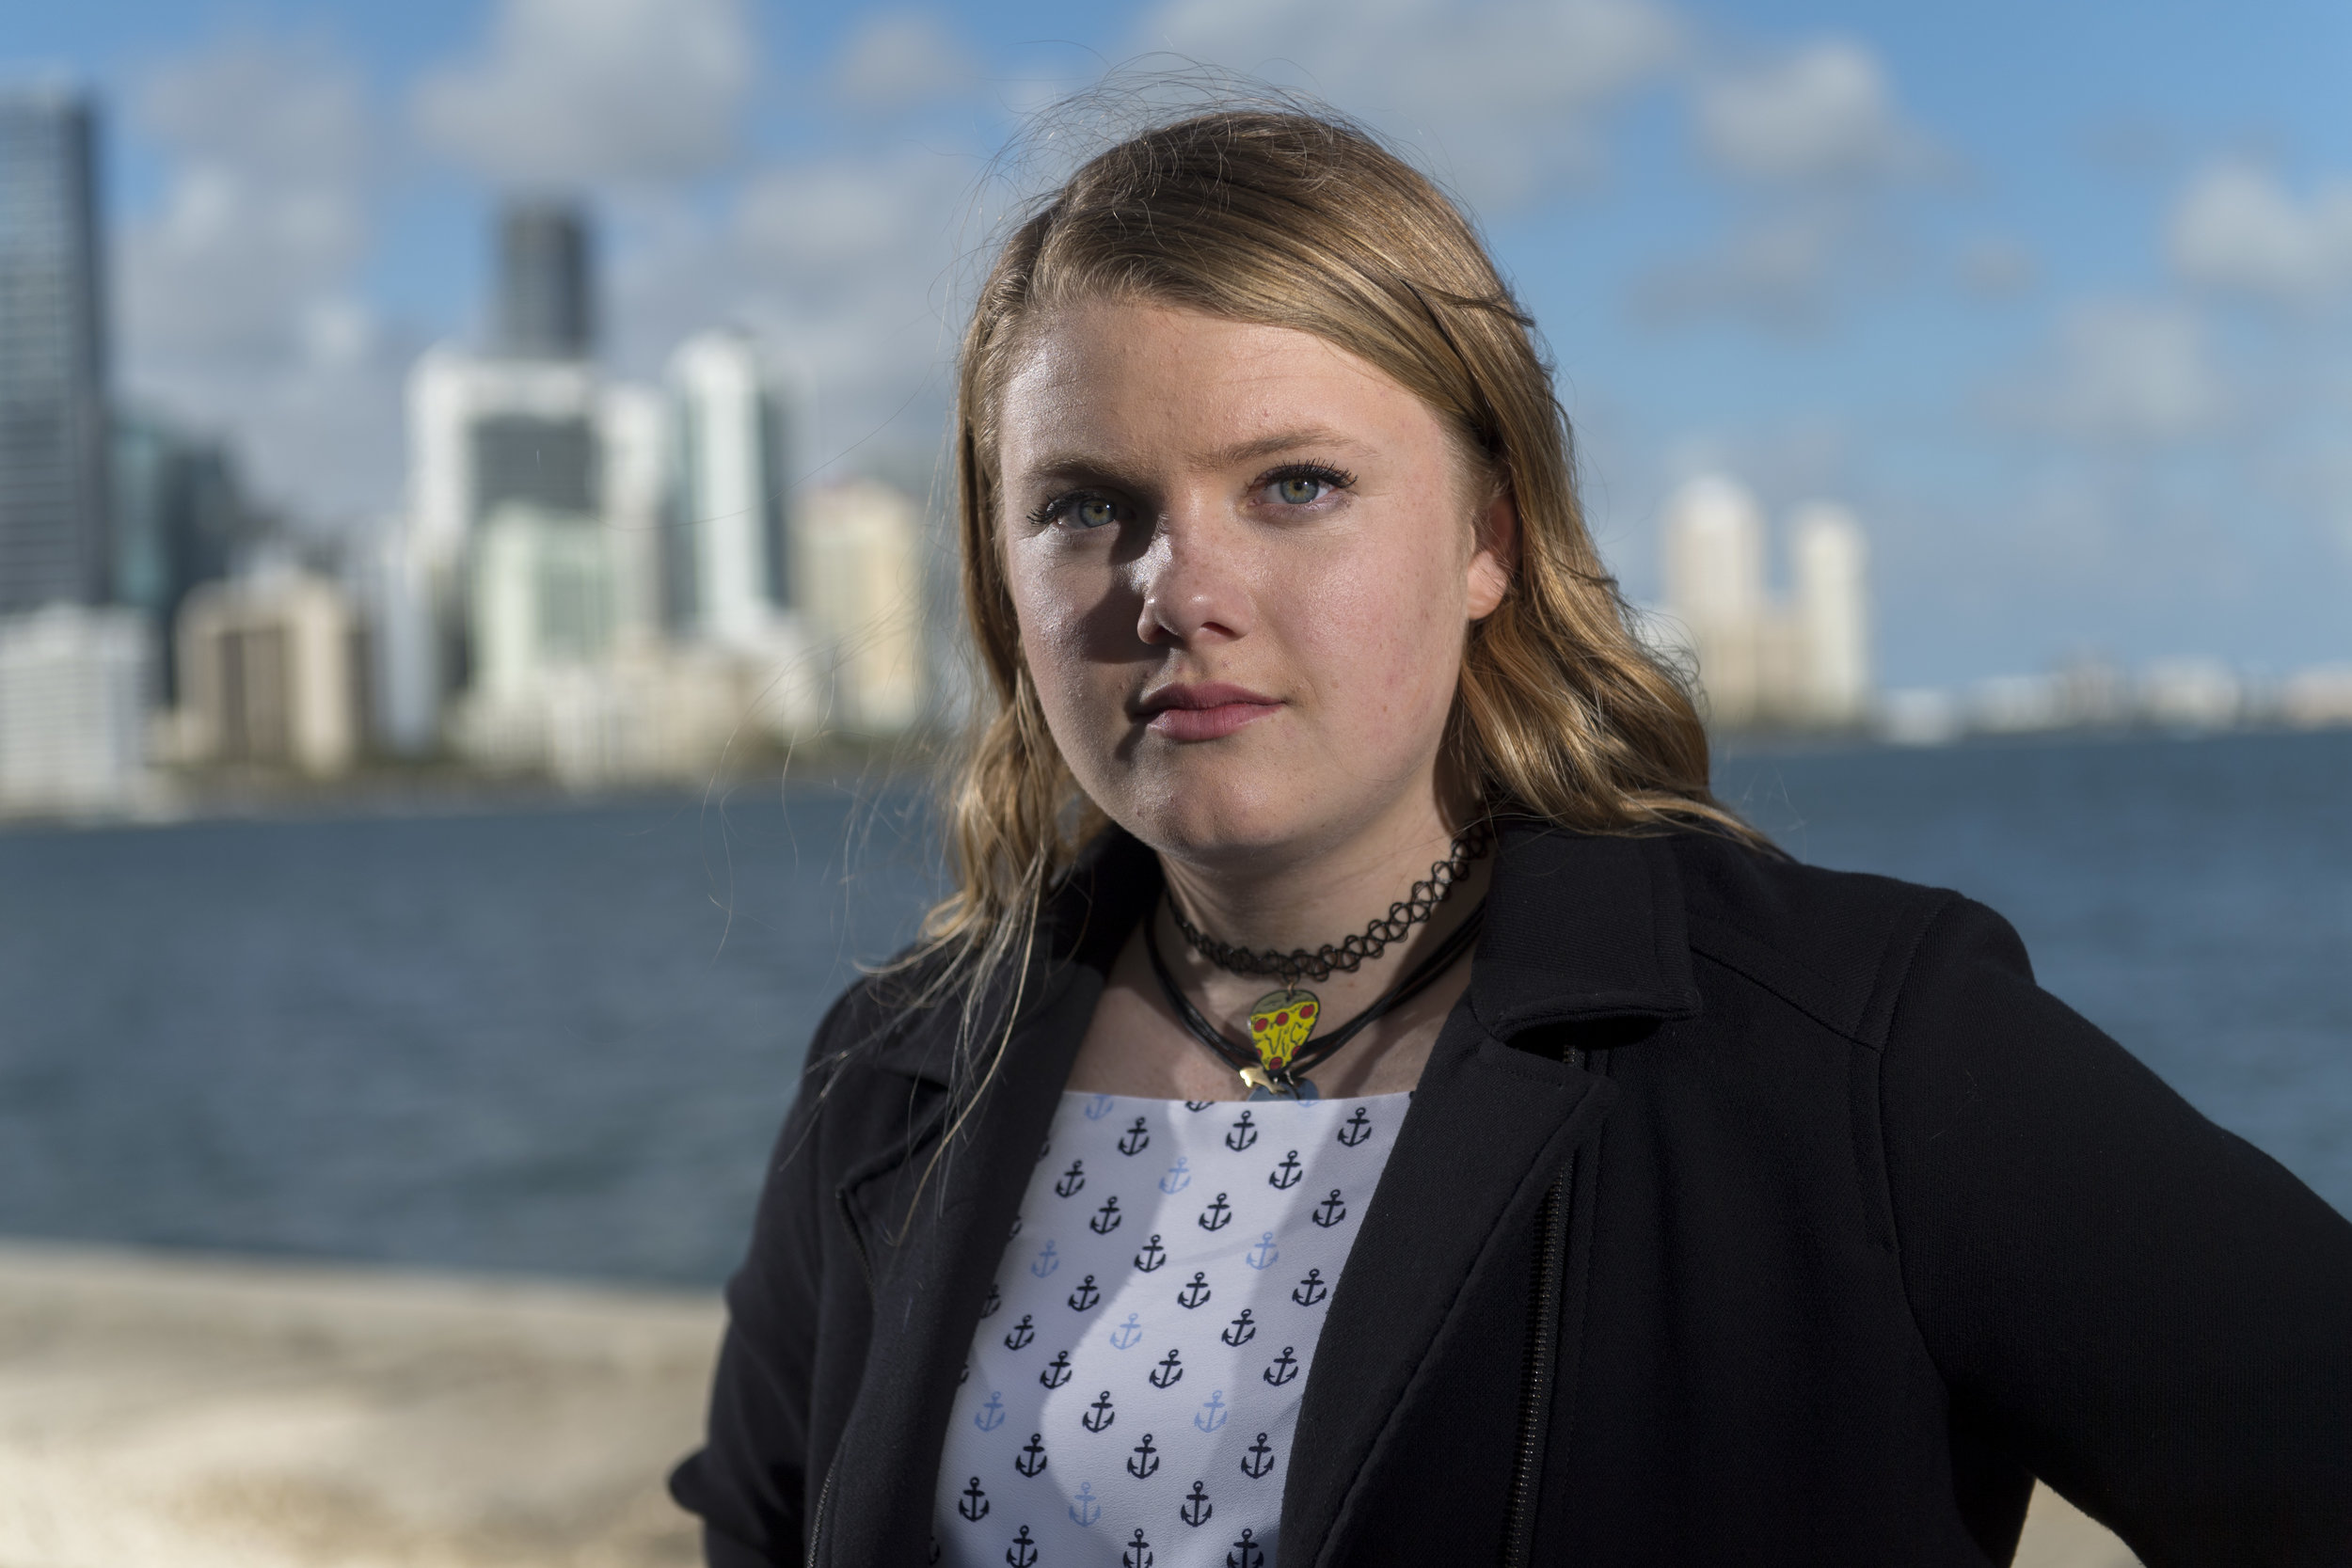 Delaney is a climate activist from Florida and one of the plaintiffs on the youth climate lawsuit against the state of Florida. This post originally appeared on  her blog .